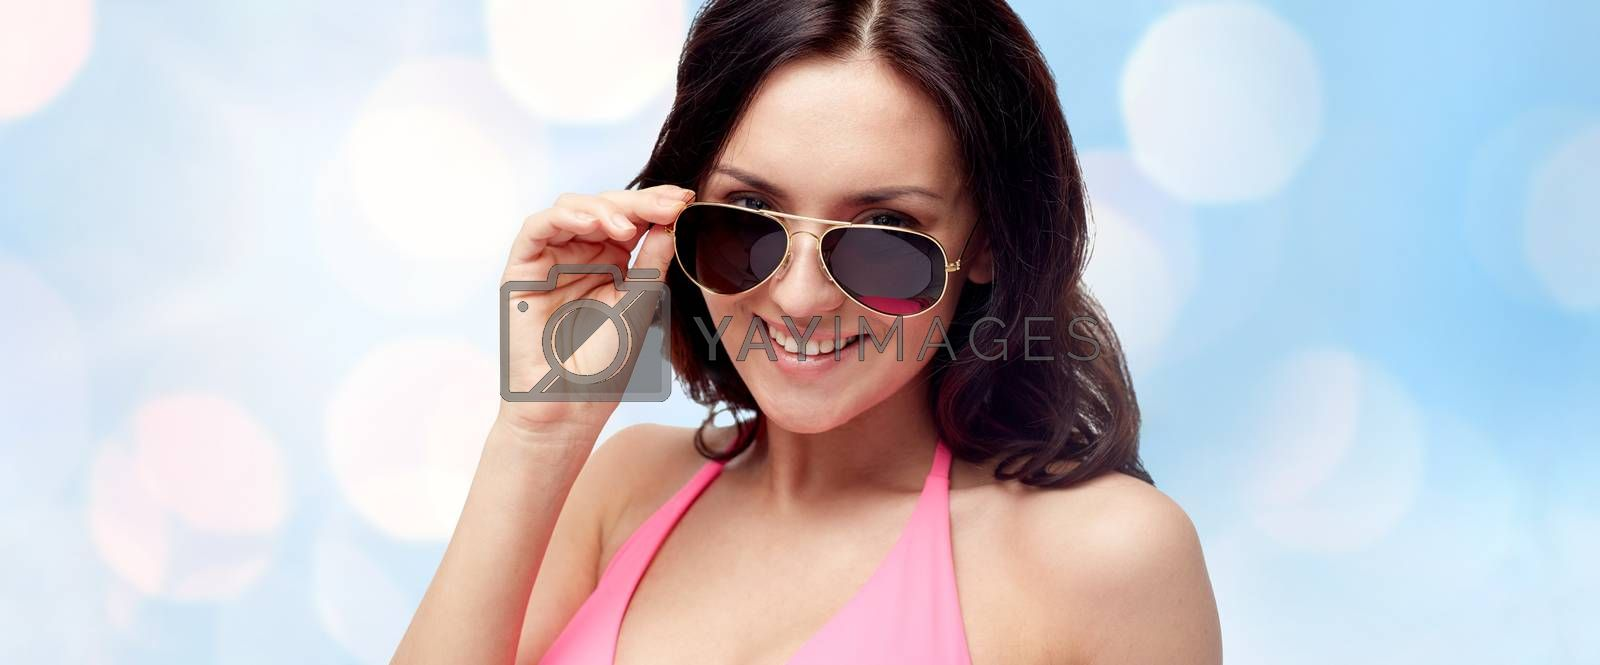 people, fashion, swimwear, summer and beach concept - happy young woman in sunglasses and pink swimsuit looking at you over blue holidays lights background